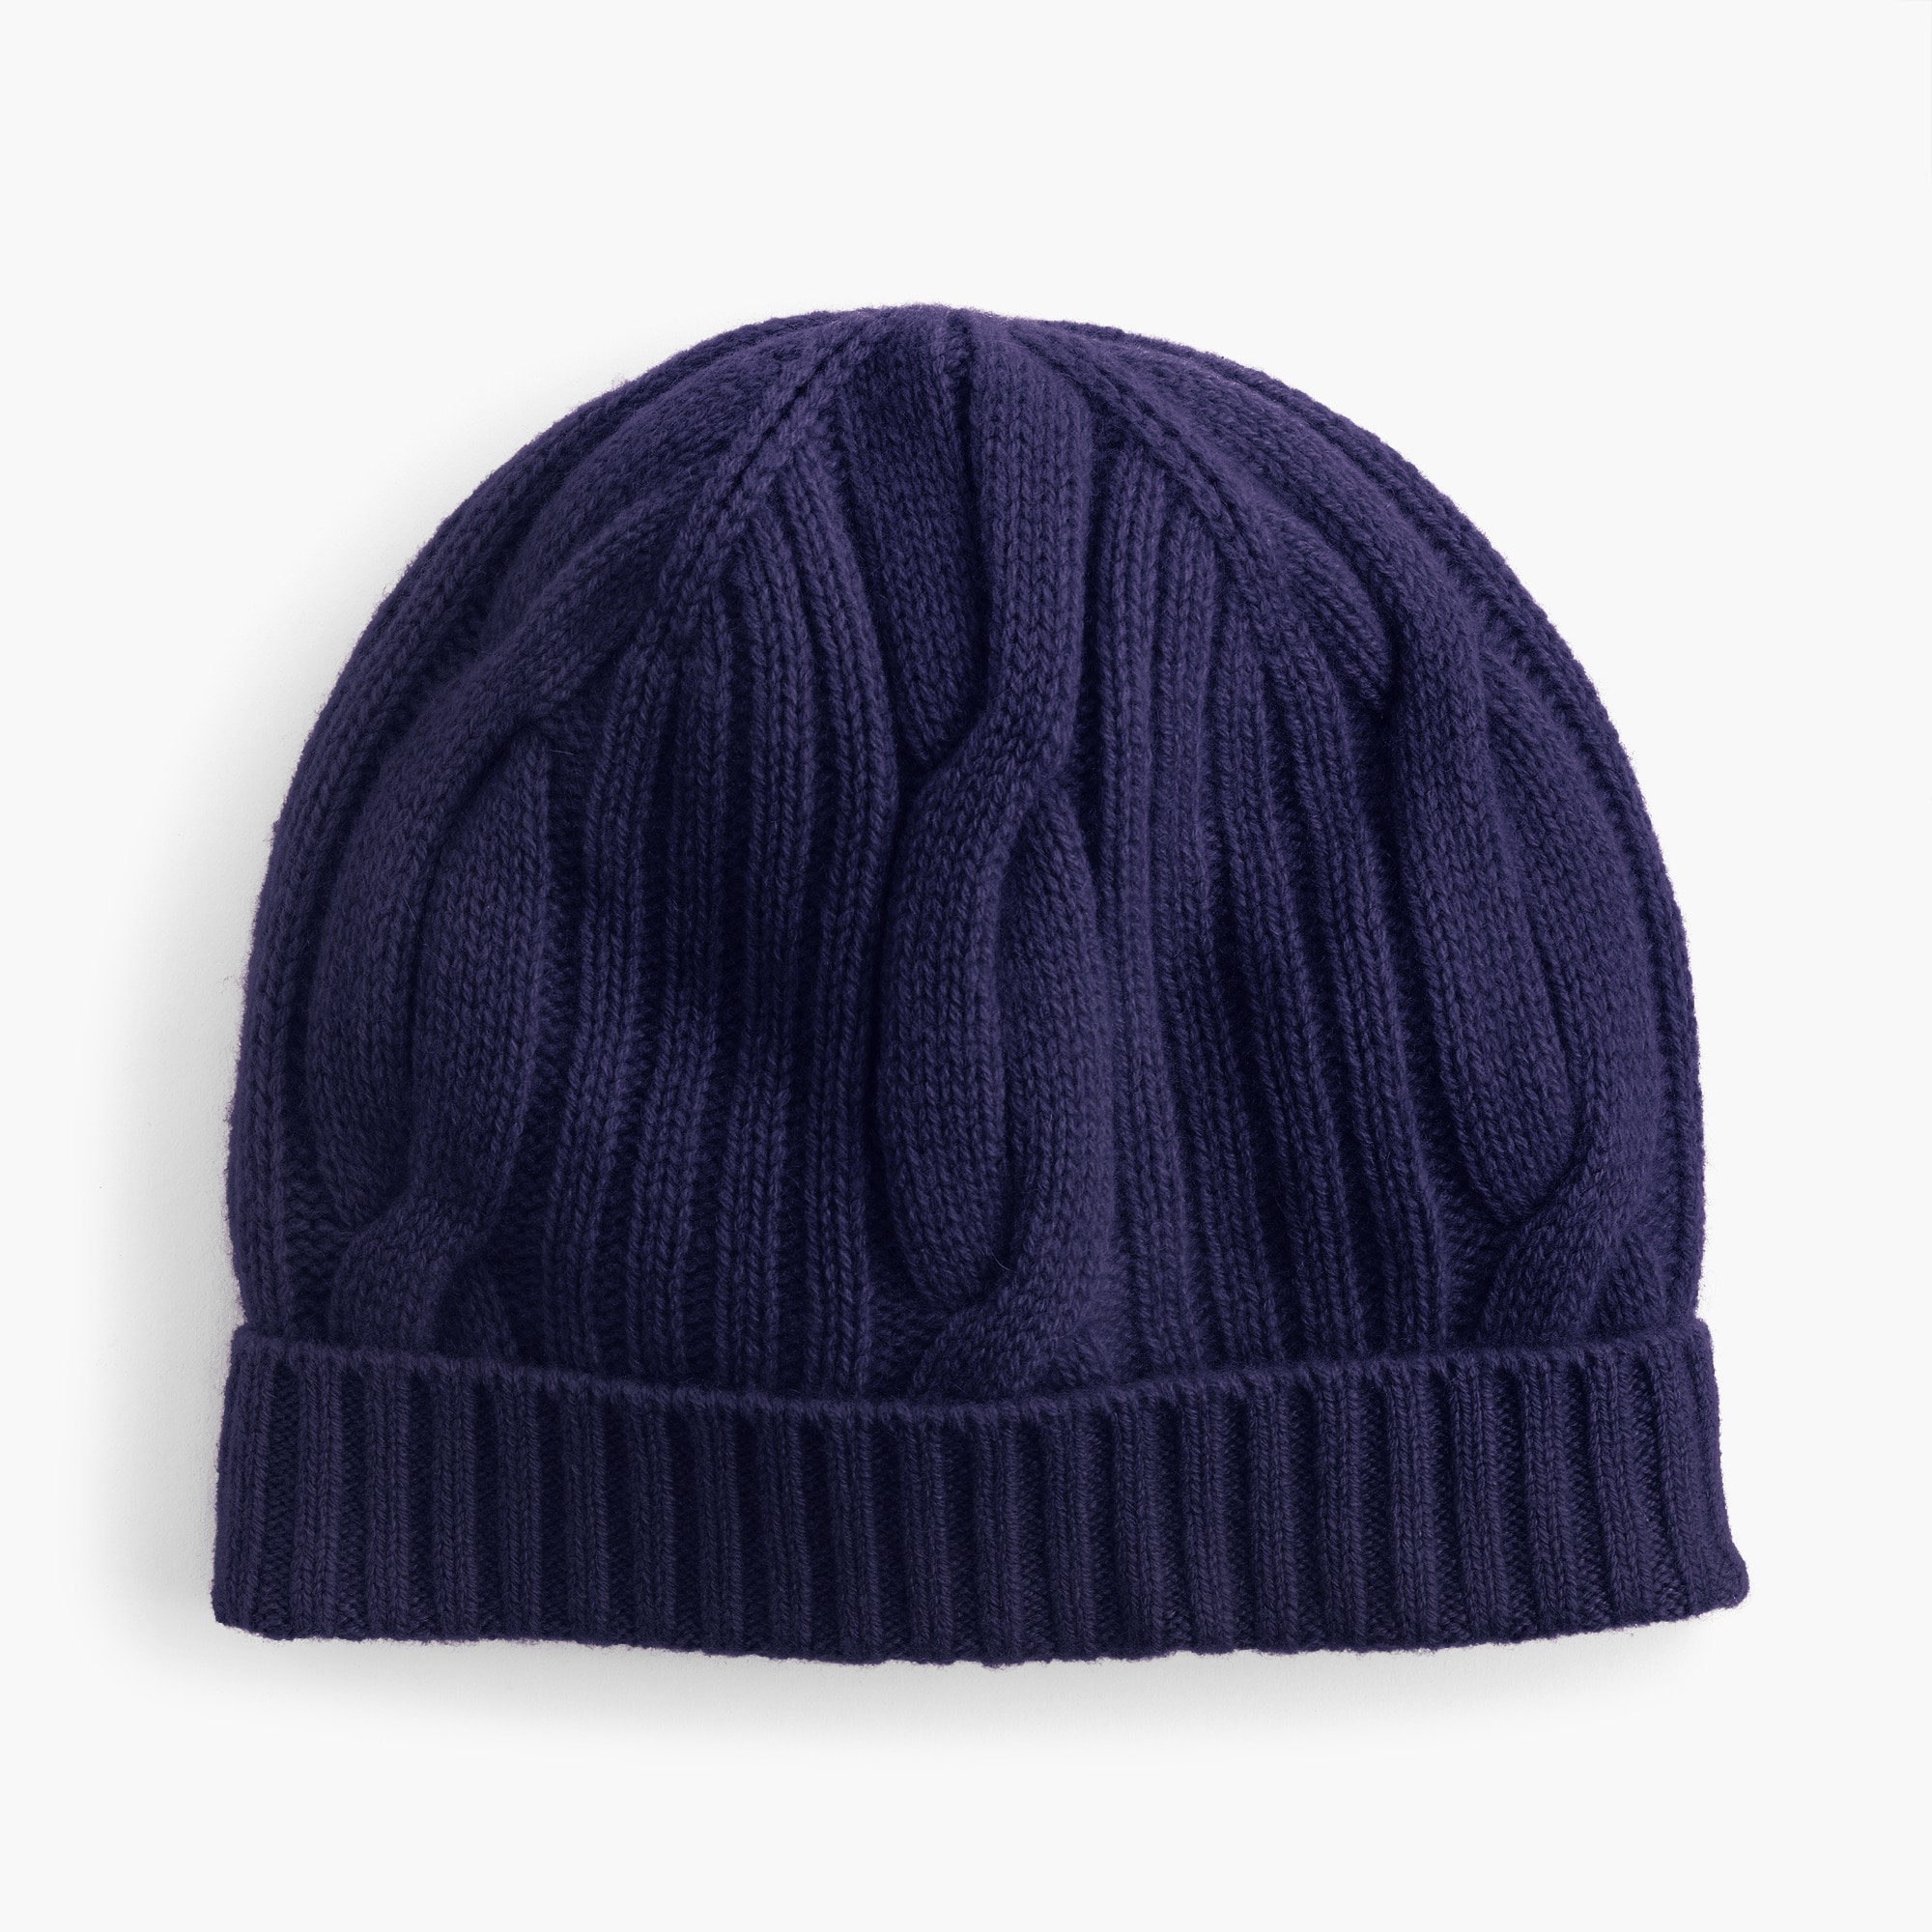 Ribbed cableknit beanie in everyday cashmere